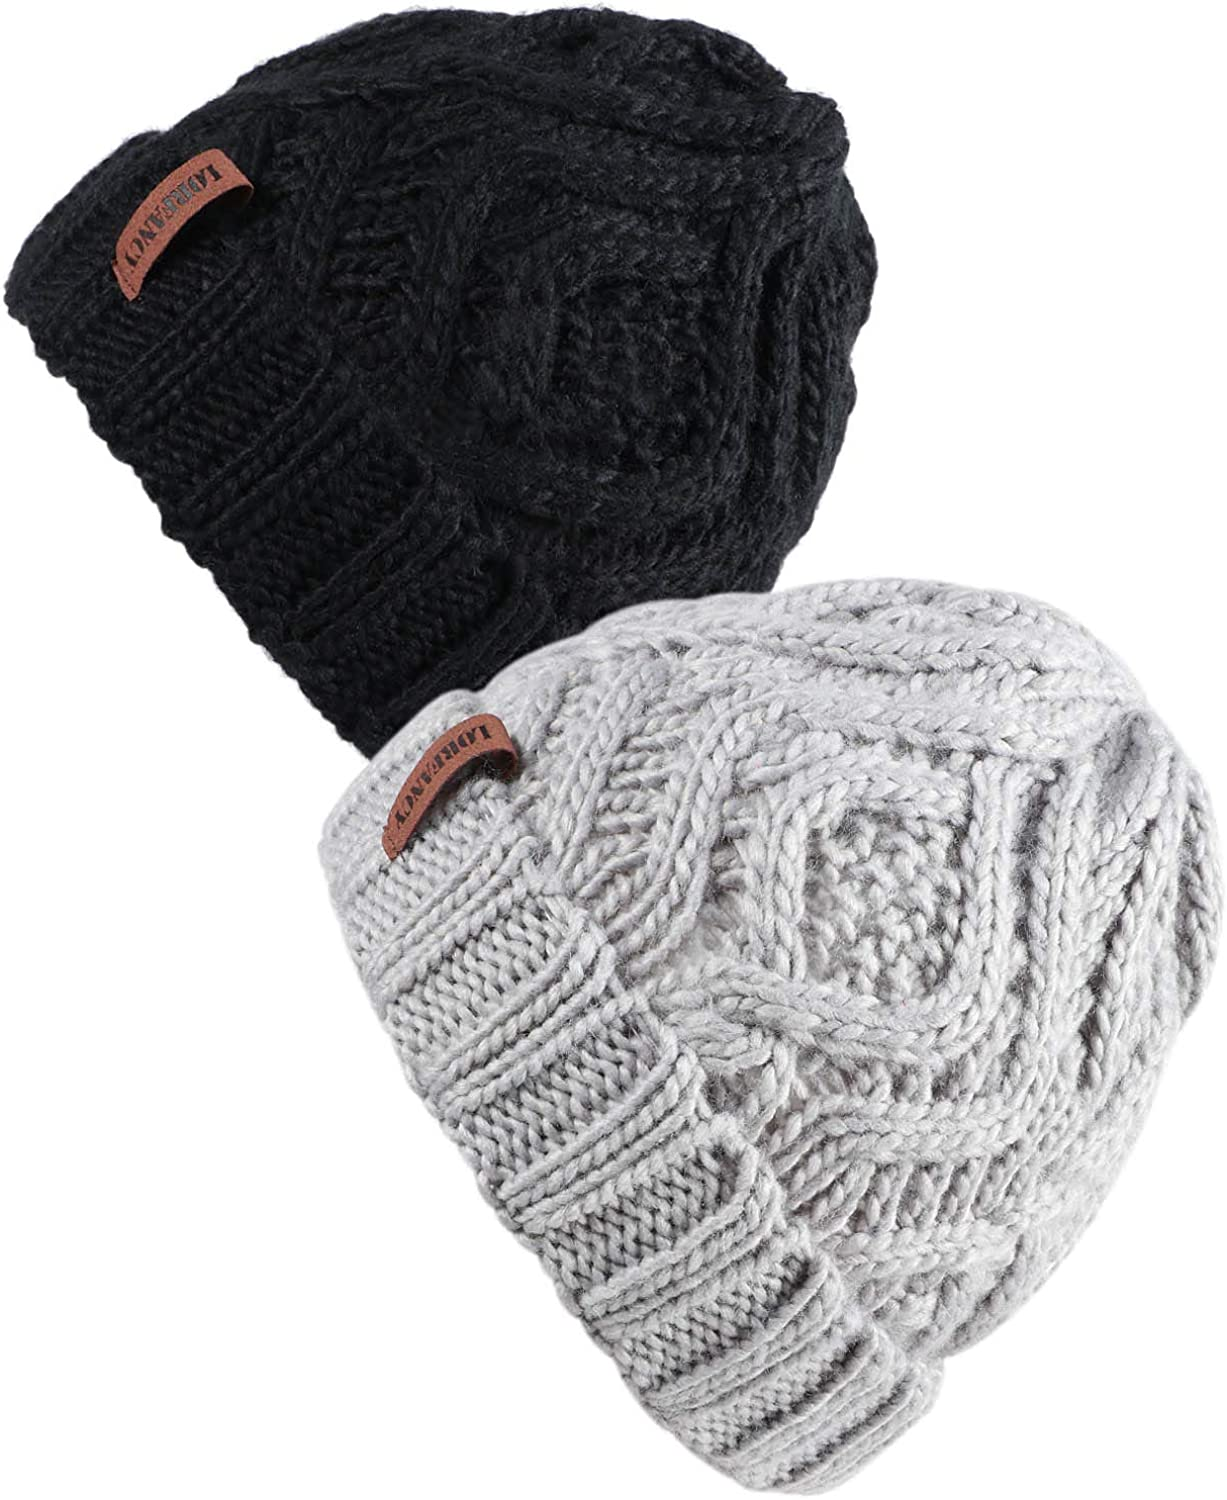 vamei Beanie Knit Hat for Women Men Christmas Winter Gifts Soft Stretch Cable Cap Outdoor Warm Skullies Chunky Ladies Sloush Knit Hat 2pack